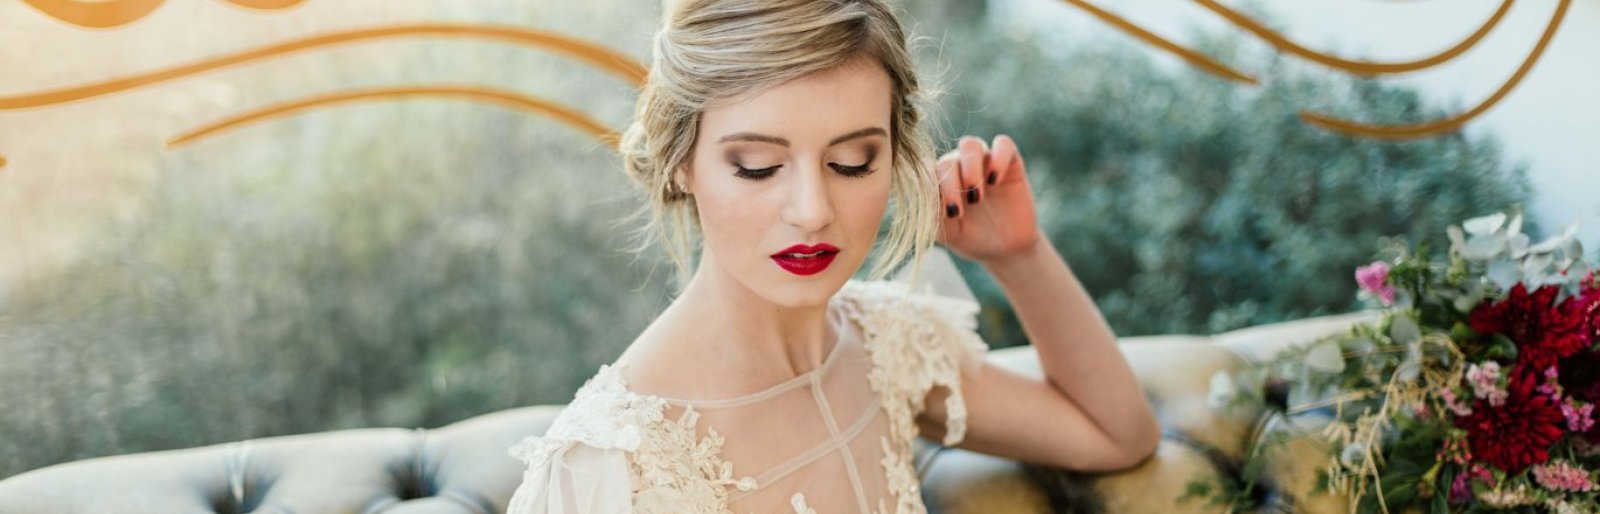 Top 5 Make-up Artists in Cape Town